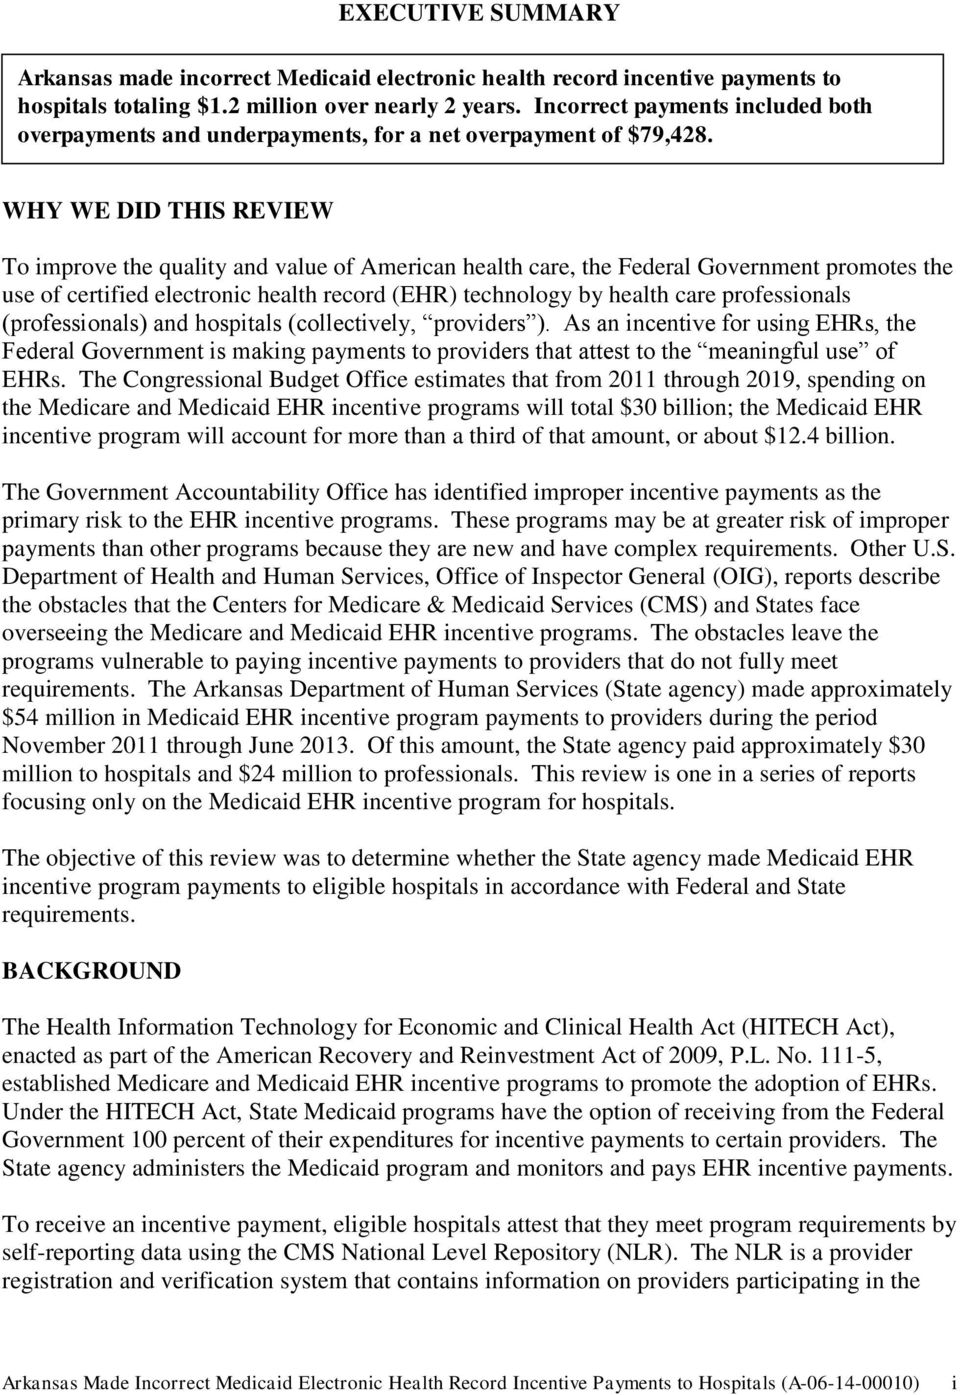 WHY WE DID THIS REVIEW To improve the quality and value of American health care, the Federal Government promotes the use of certified electronic health record (EHR) technology by health care